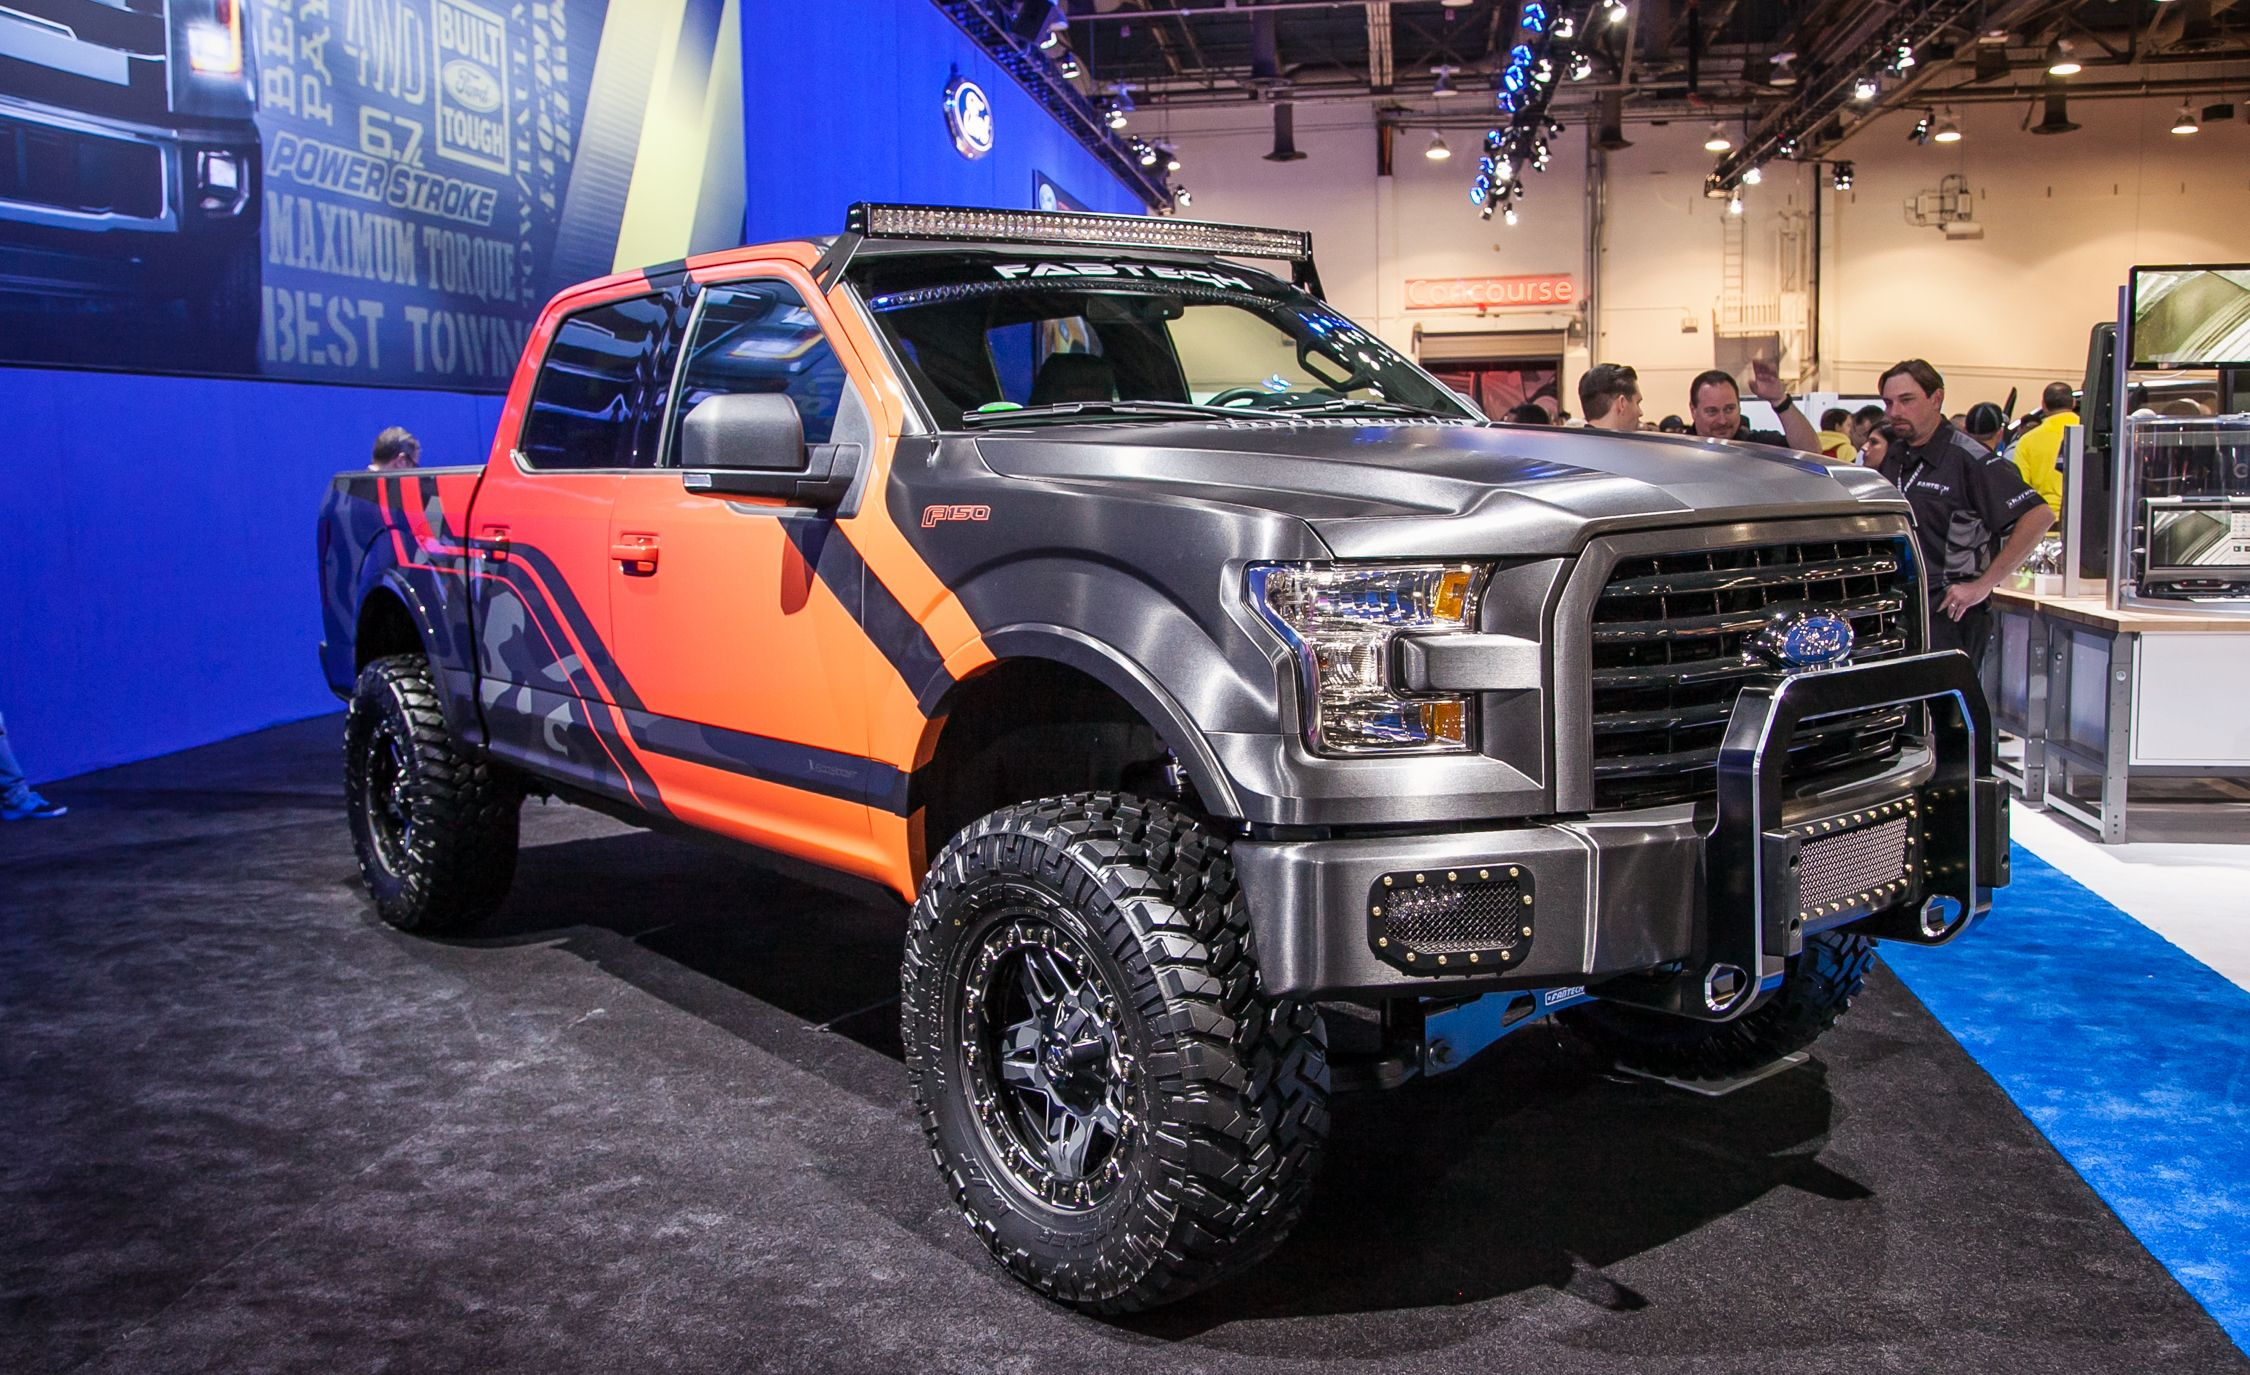 150 ford sema cars f150 wrap end trucks driver them caranddriver lifted awesome cool pickup tricked invades offroad gta